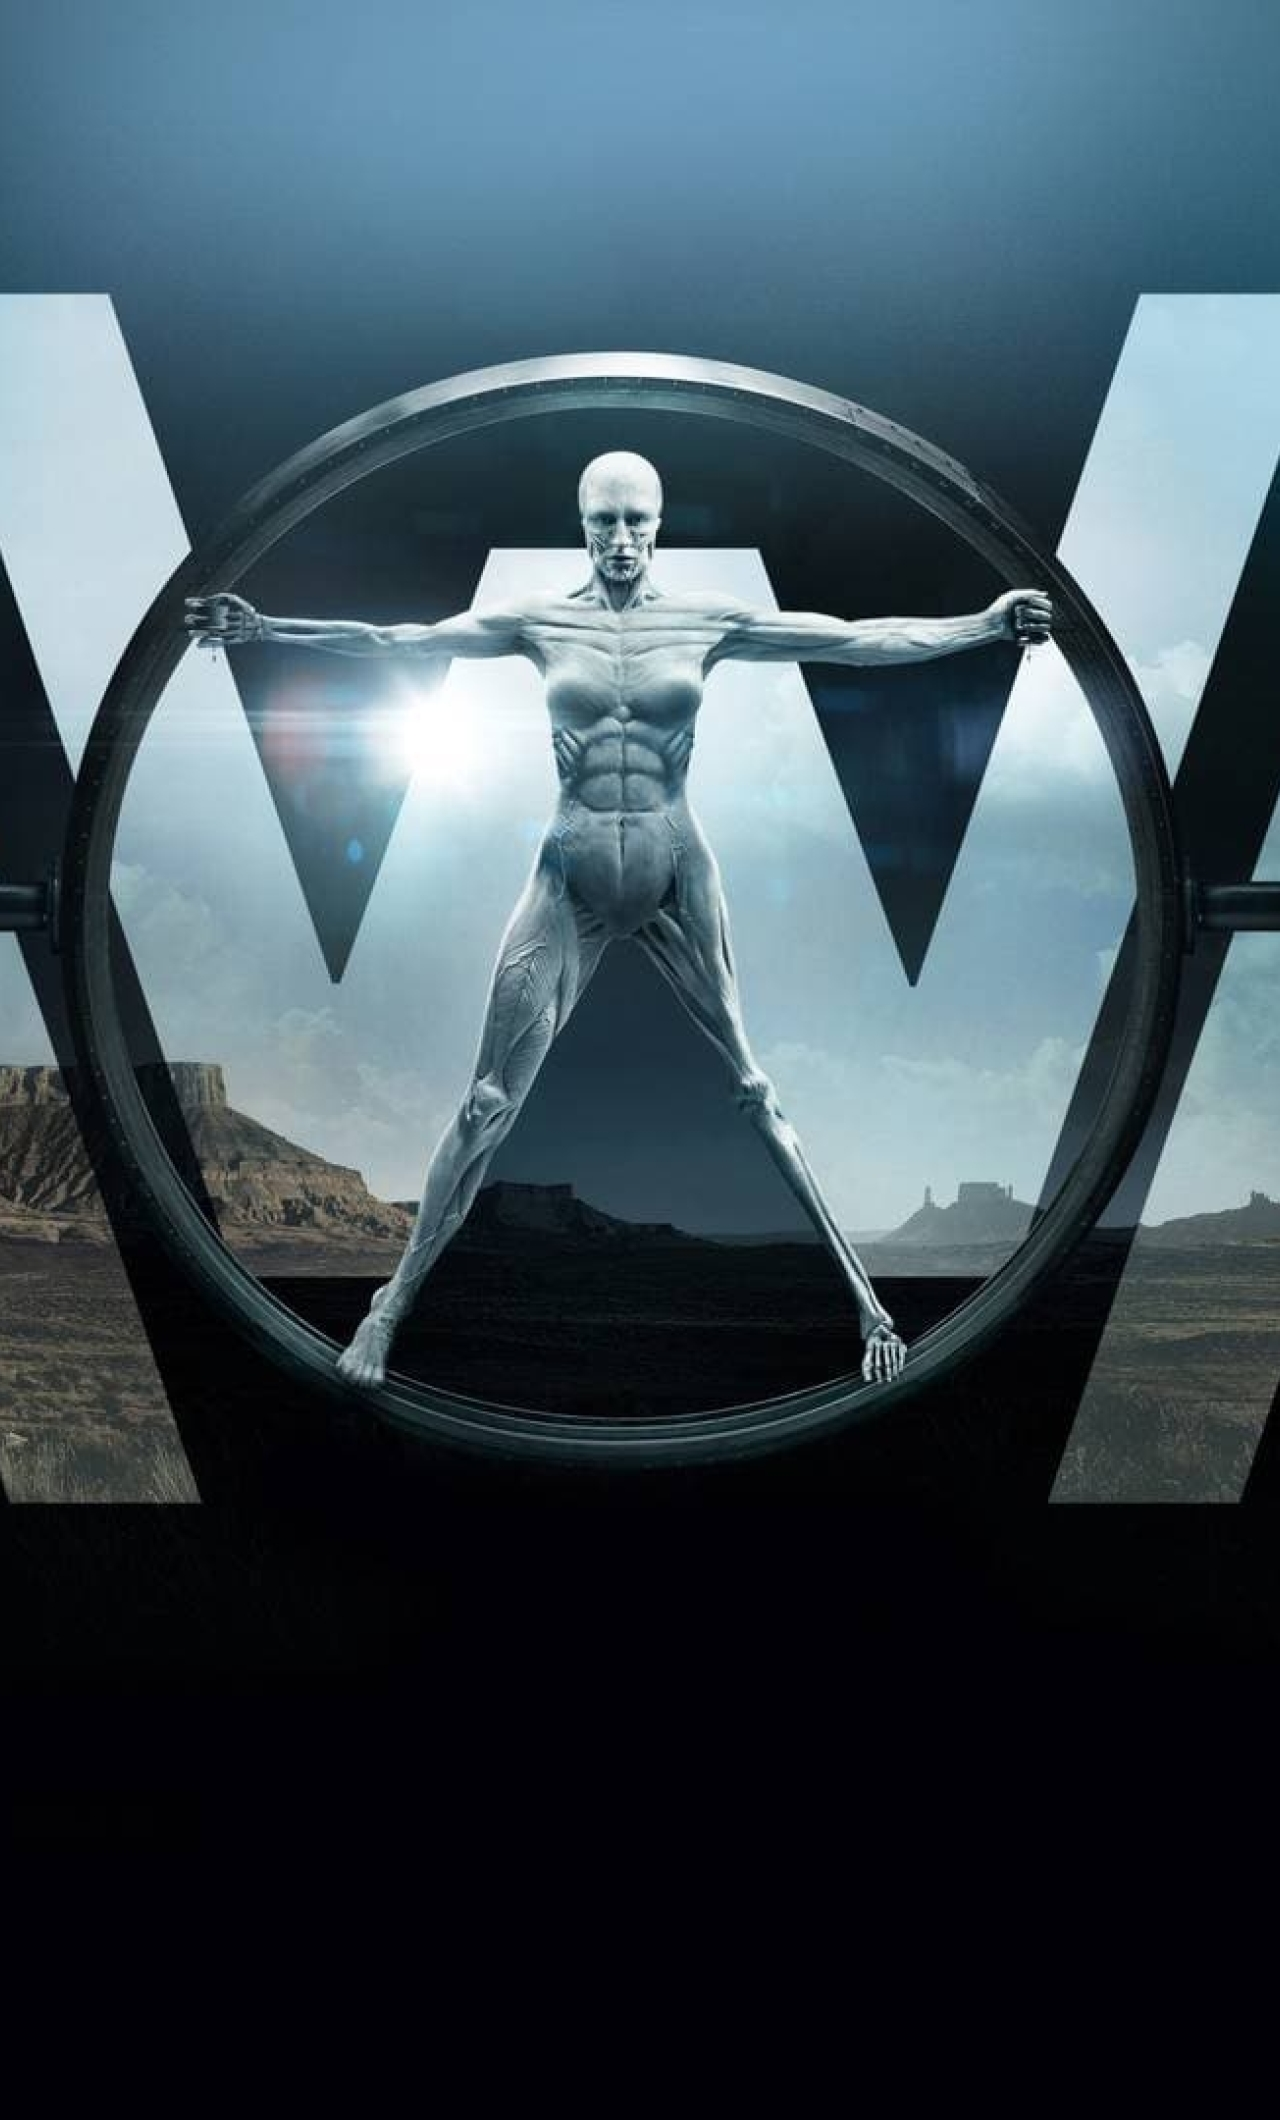 1280x2120 Westworld Iphone 6 Plus Wallpaper Hd Tv Series 4k Wallpapers Images Photos And Background